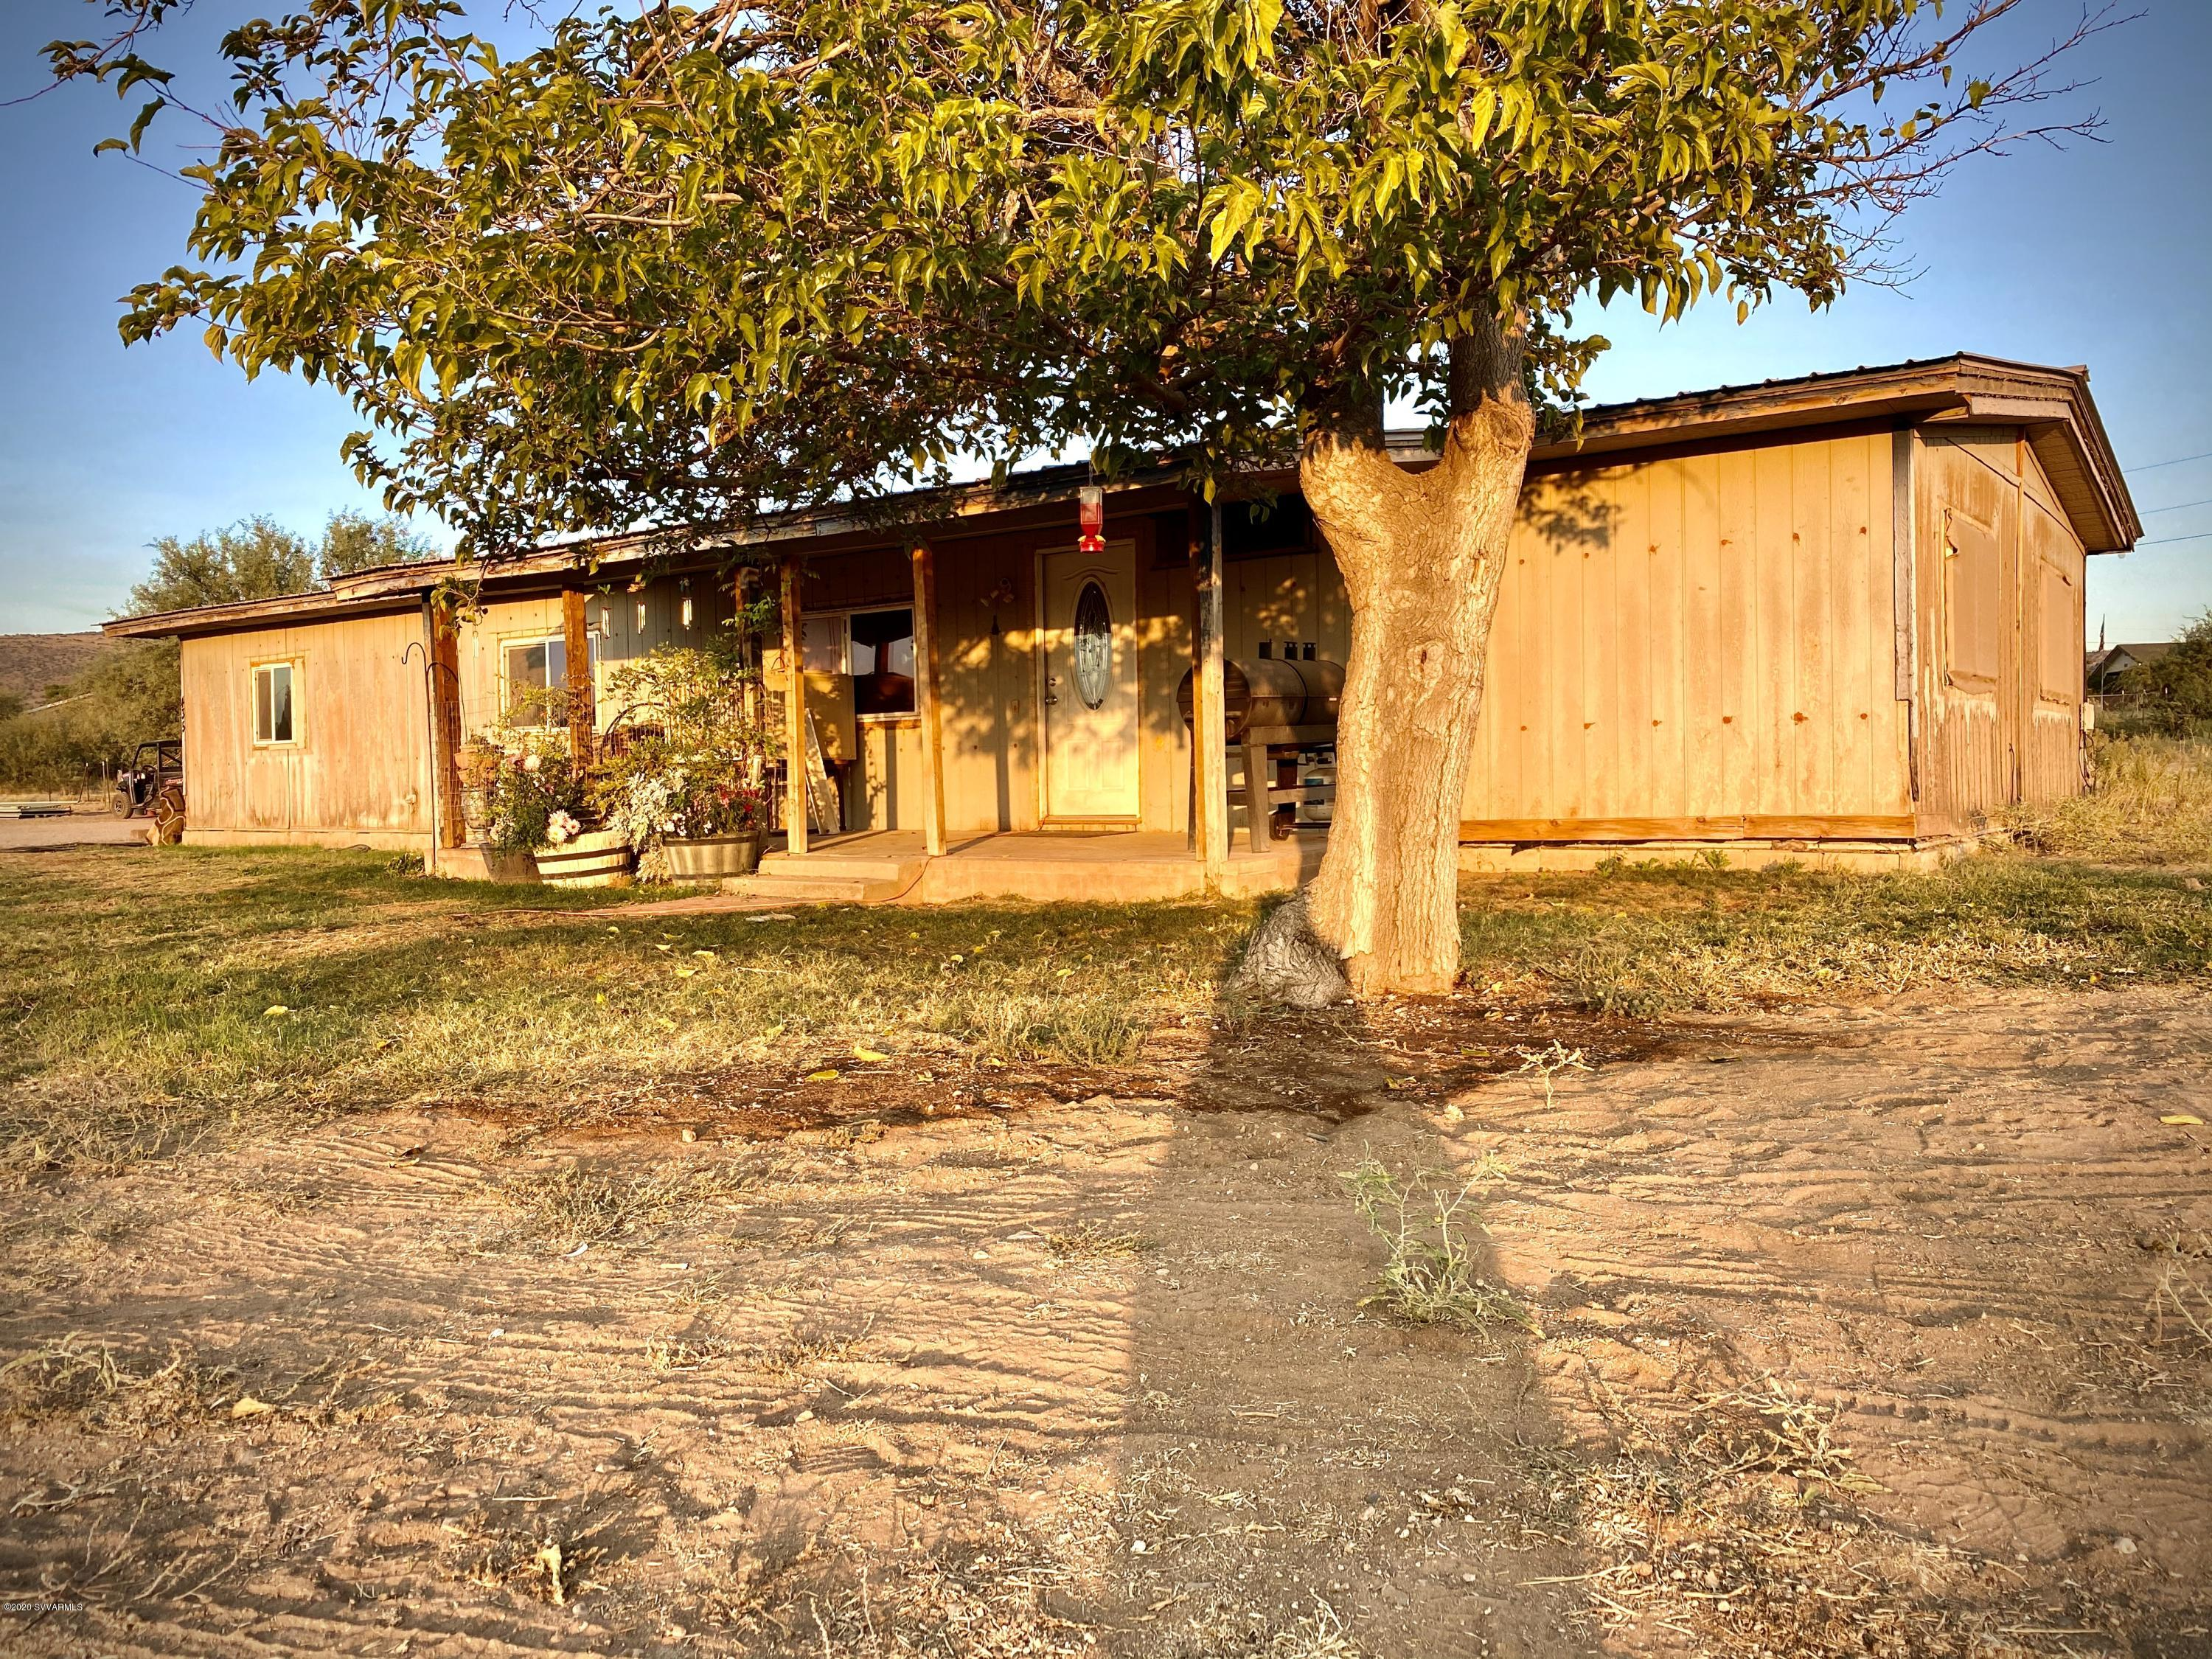 435 S Page Springs Rd Cornville, AZ 86325